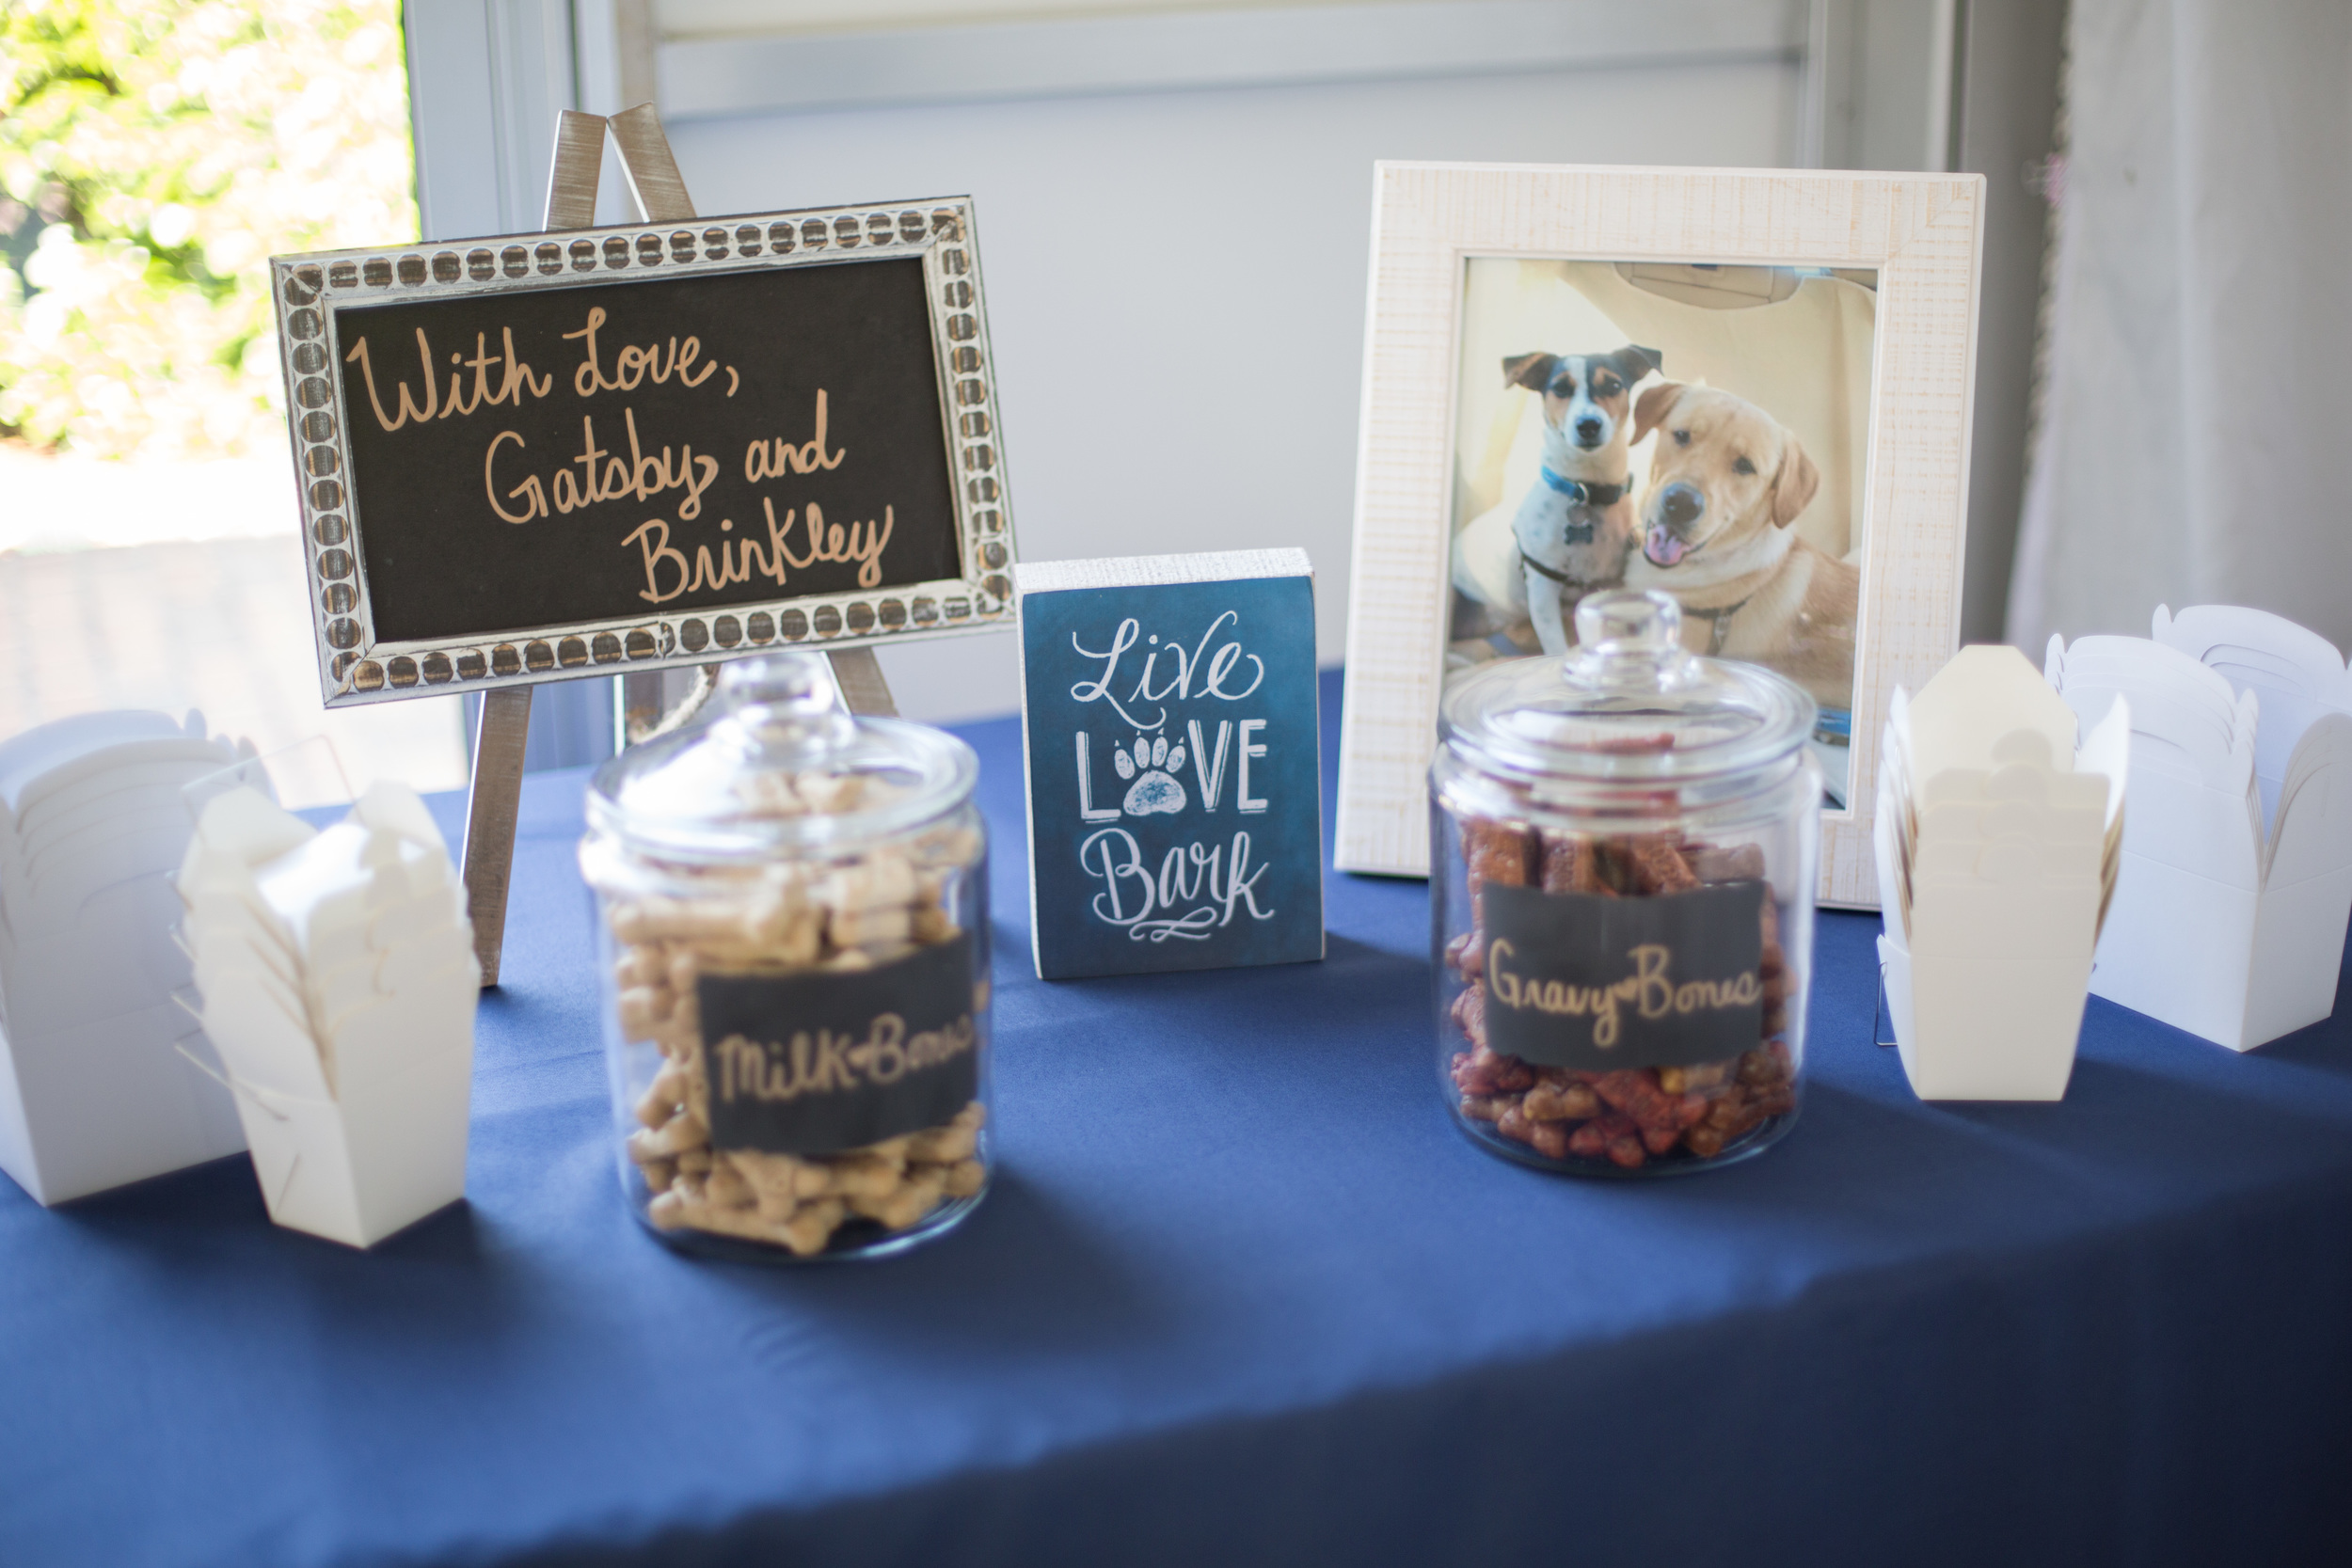 Their pups sent well wishes with a dog treat bar!